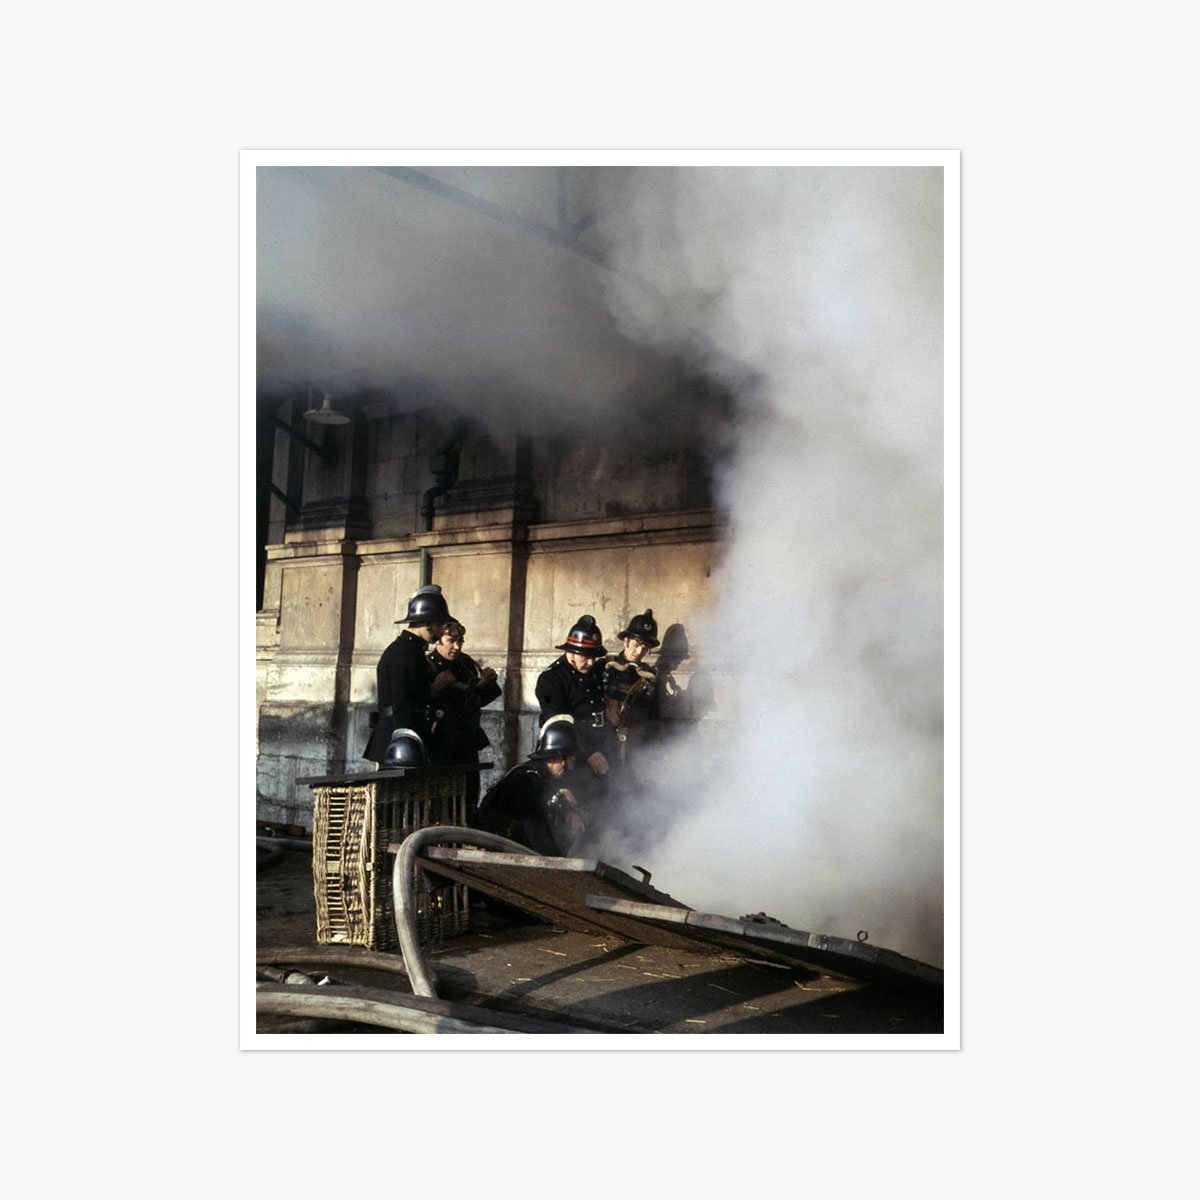 Fire Fighters tackle a blaze at Smithfield Market in London by Frank Rust